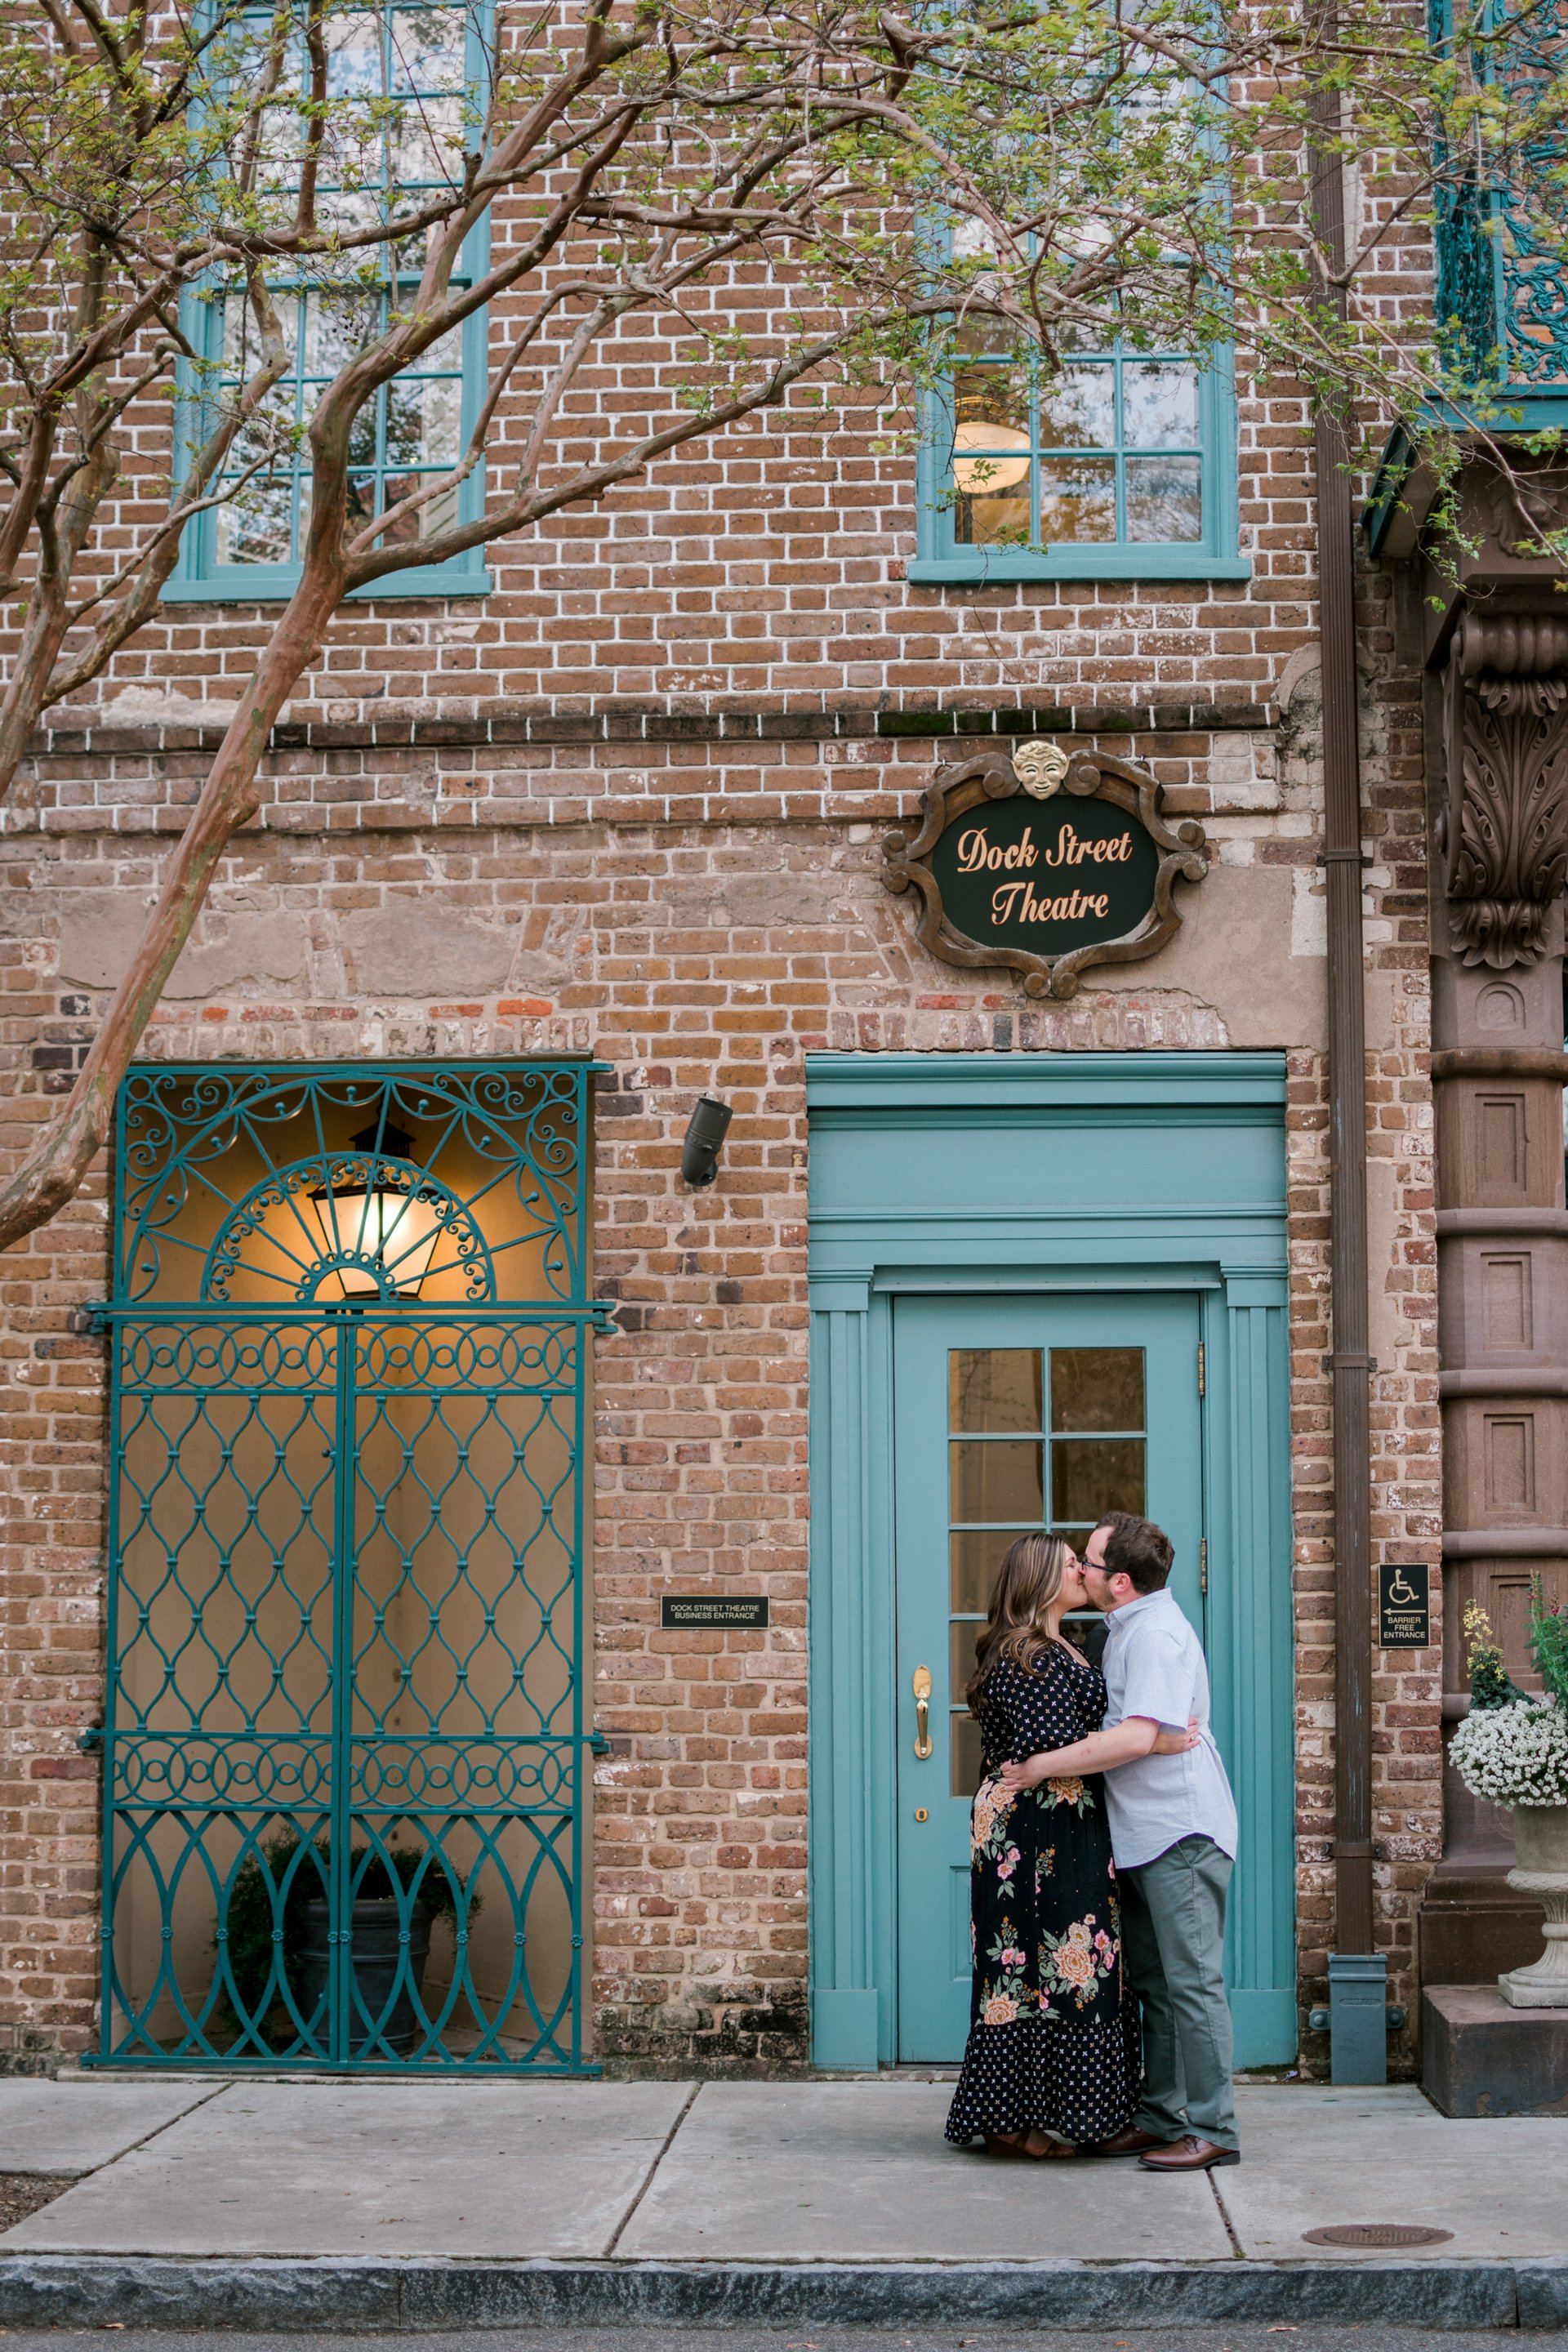 Charleston-USA-travel-story-Flytographer-8